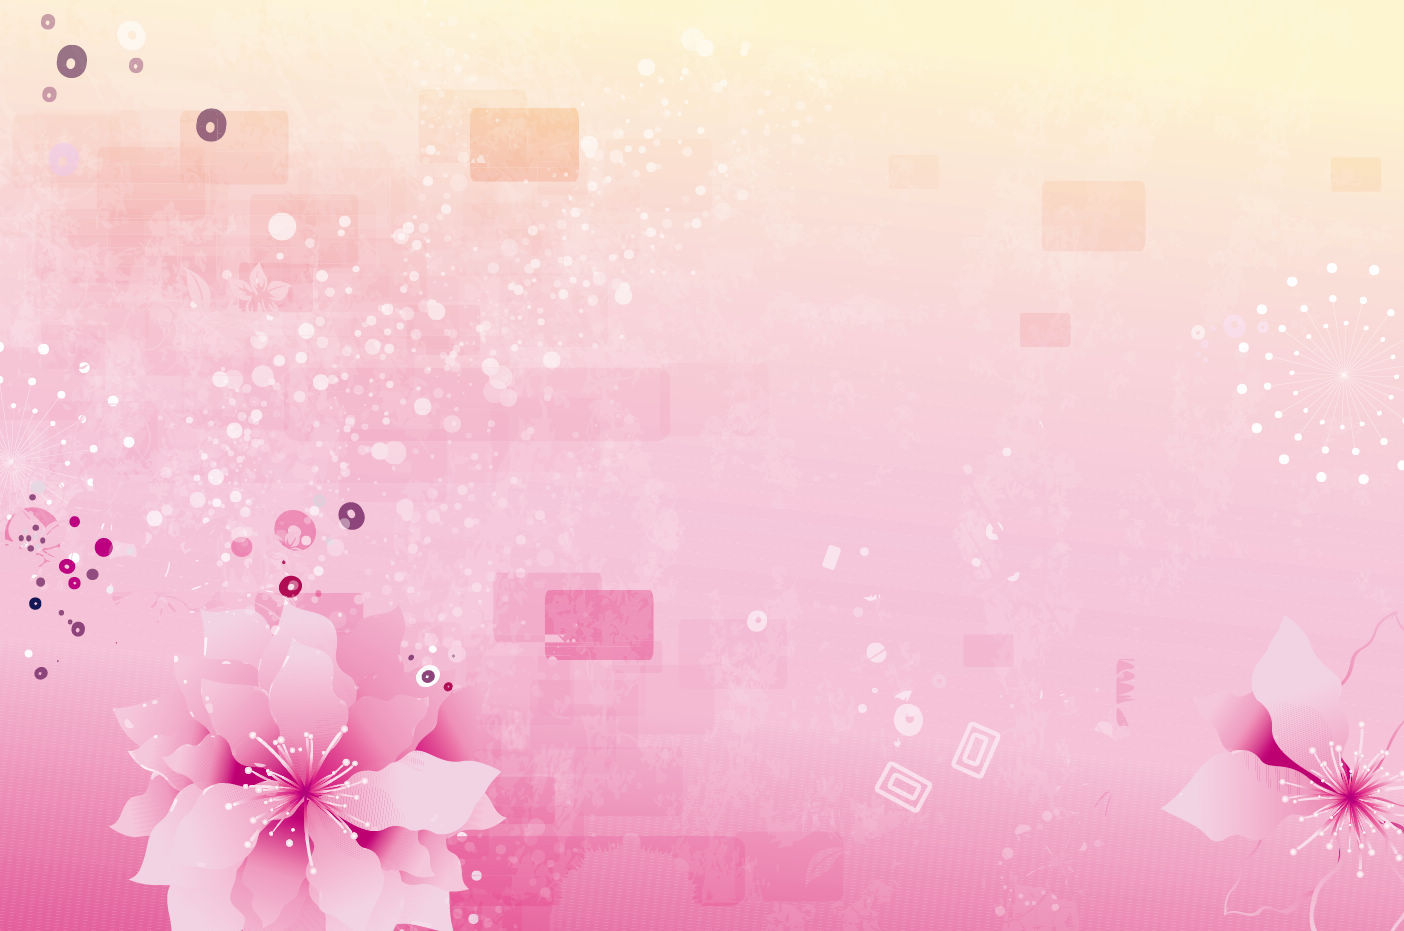 Abstract Pink Flowers Template Backgrounds For Powerpoint Templates Ppt Backgrounds